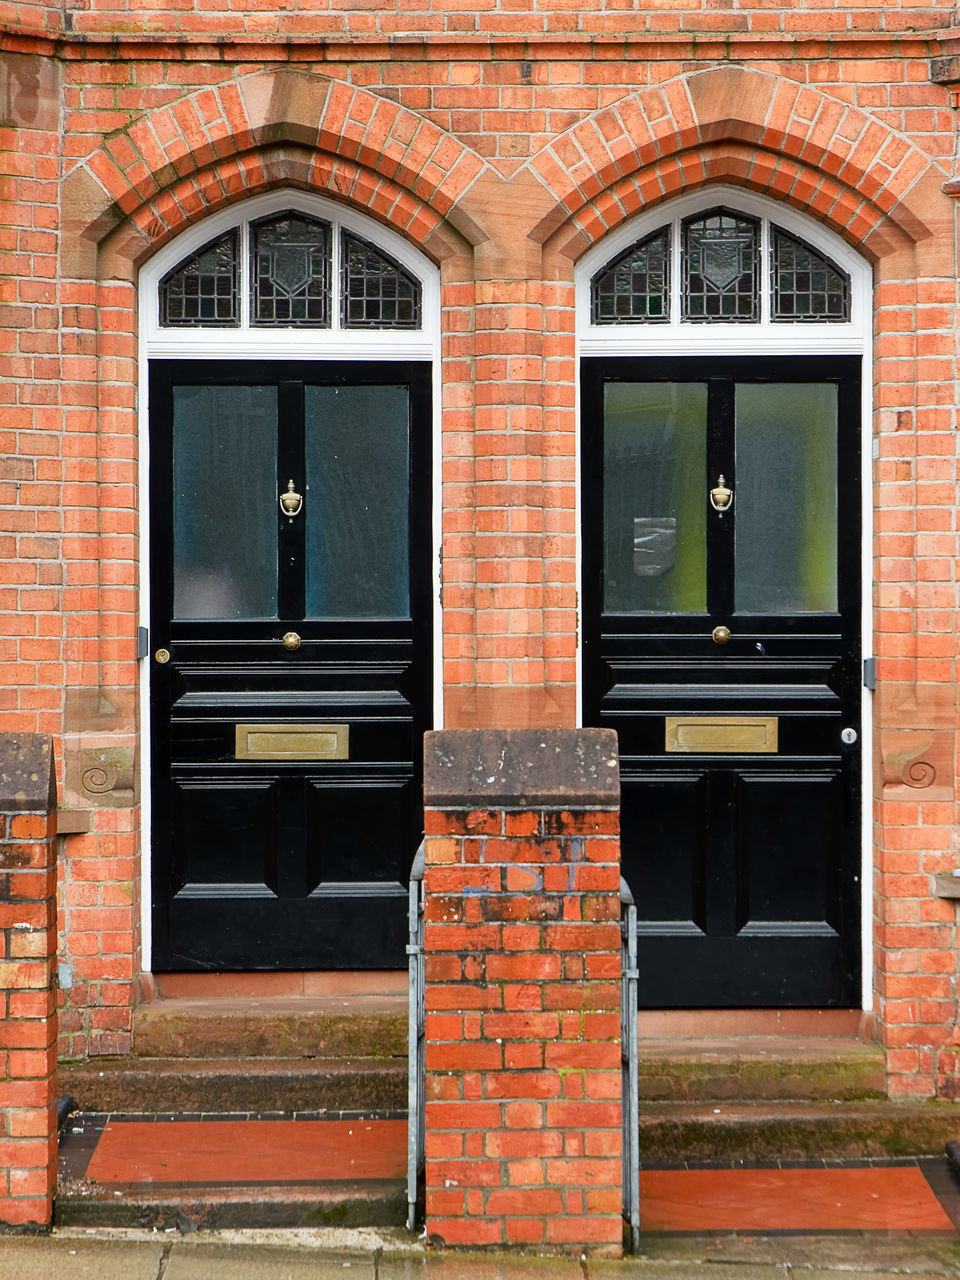 architecture, building exterior, window, outdoors, built structure, door, brick wall, day, no people